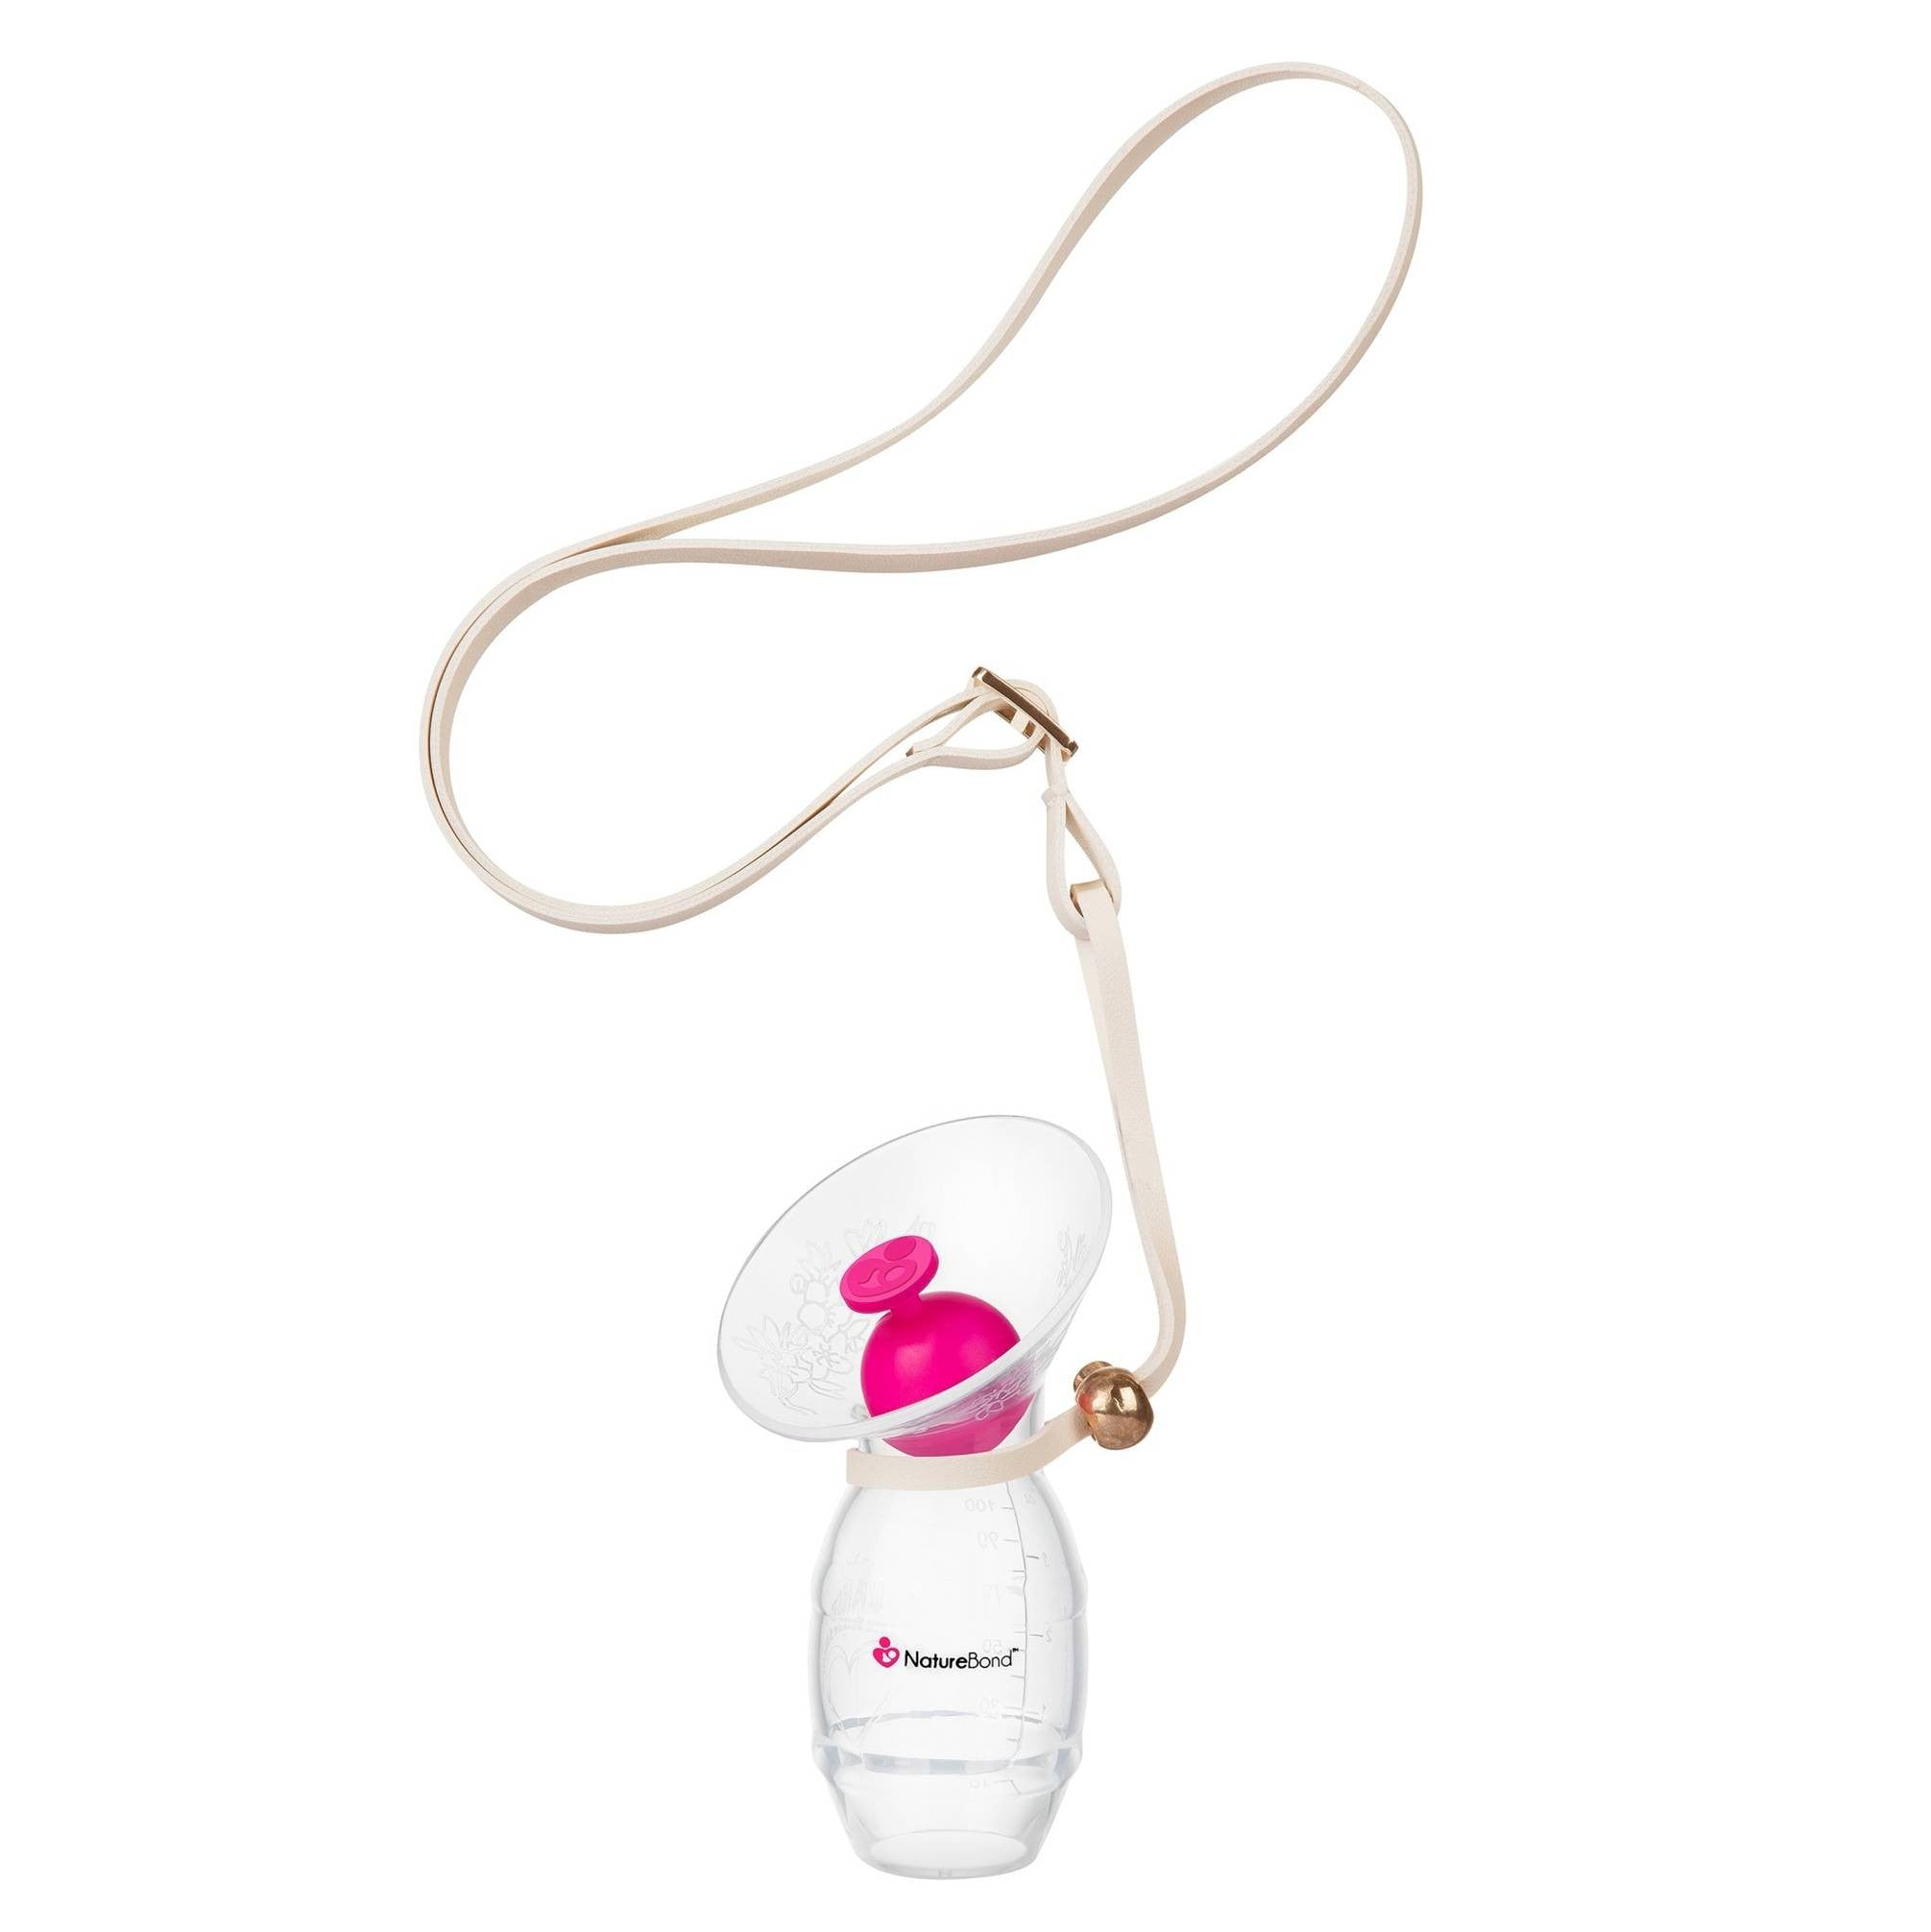 NatureBond™ Silicone Milk Catcher with Silicone Stopper and Strap - Mighty Baby PH